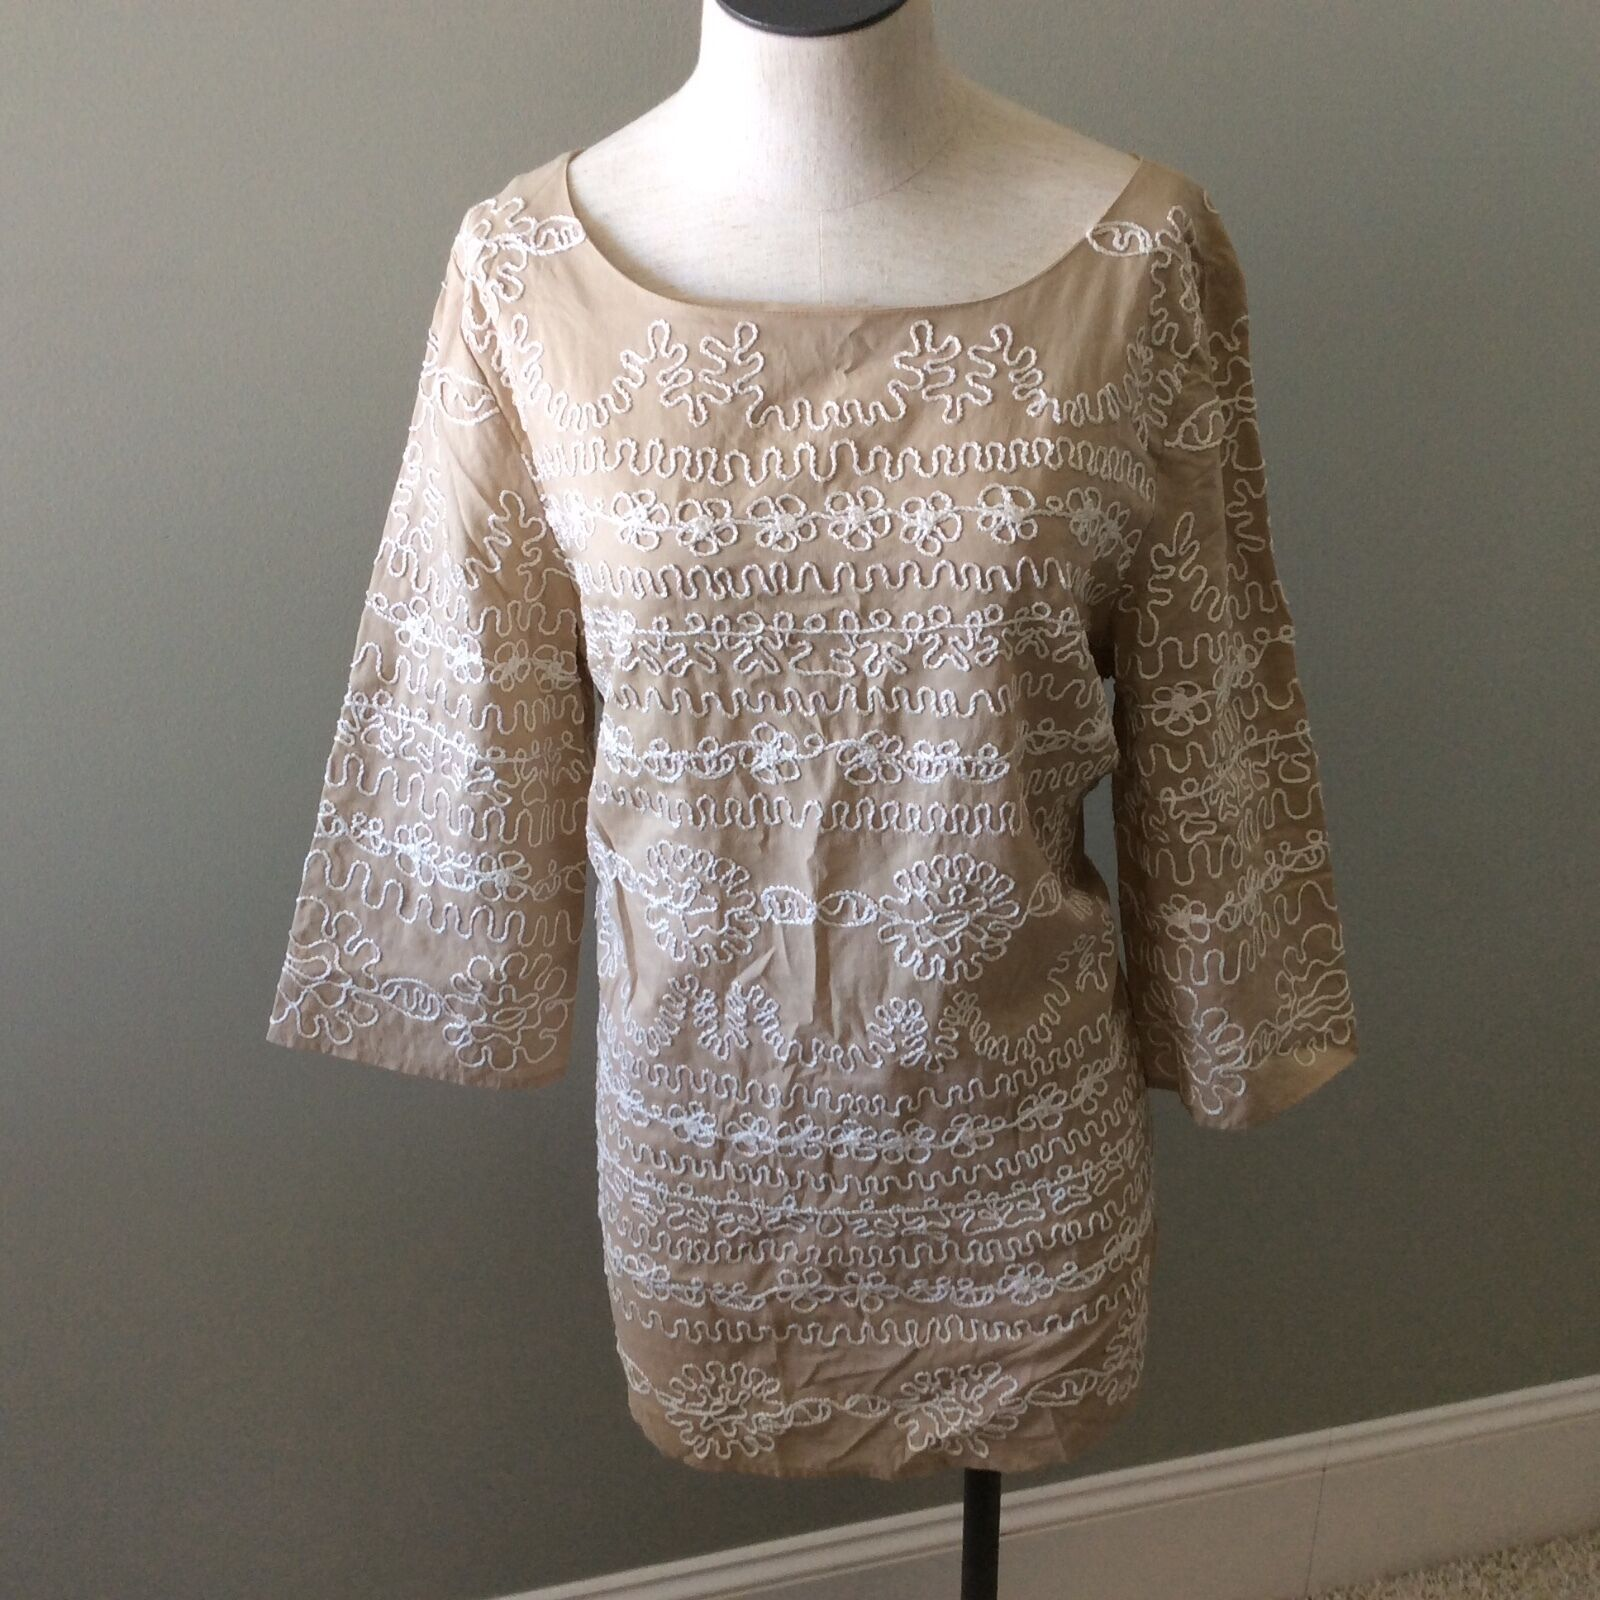 Lillly Pulitzer Tan Cream Tunic Top Blouse Rope Off Weiß Cotton M Medium New